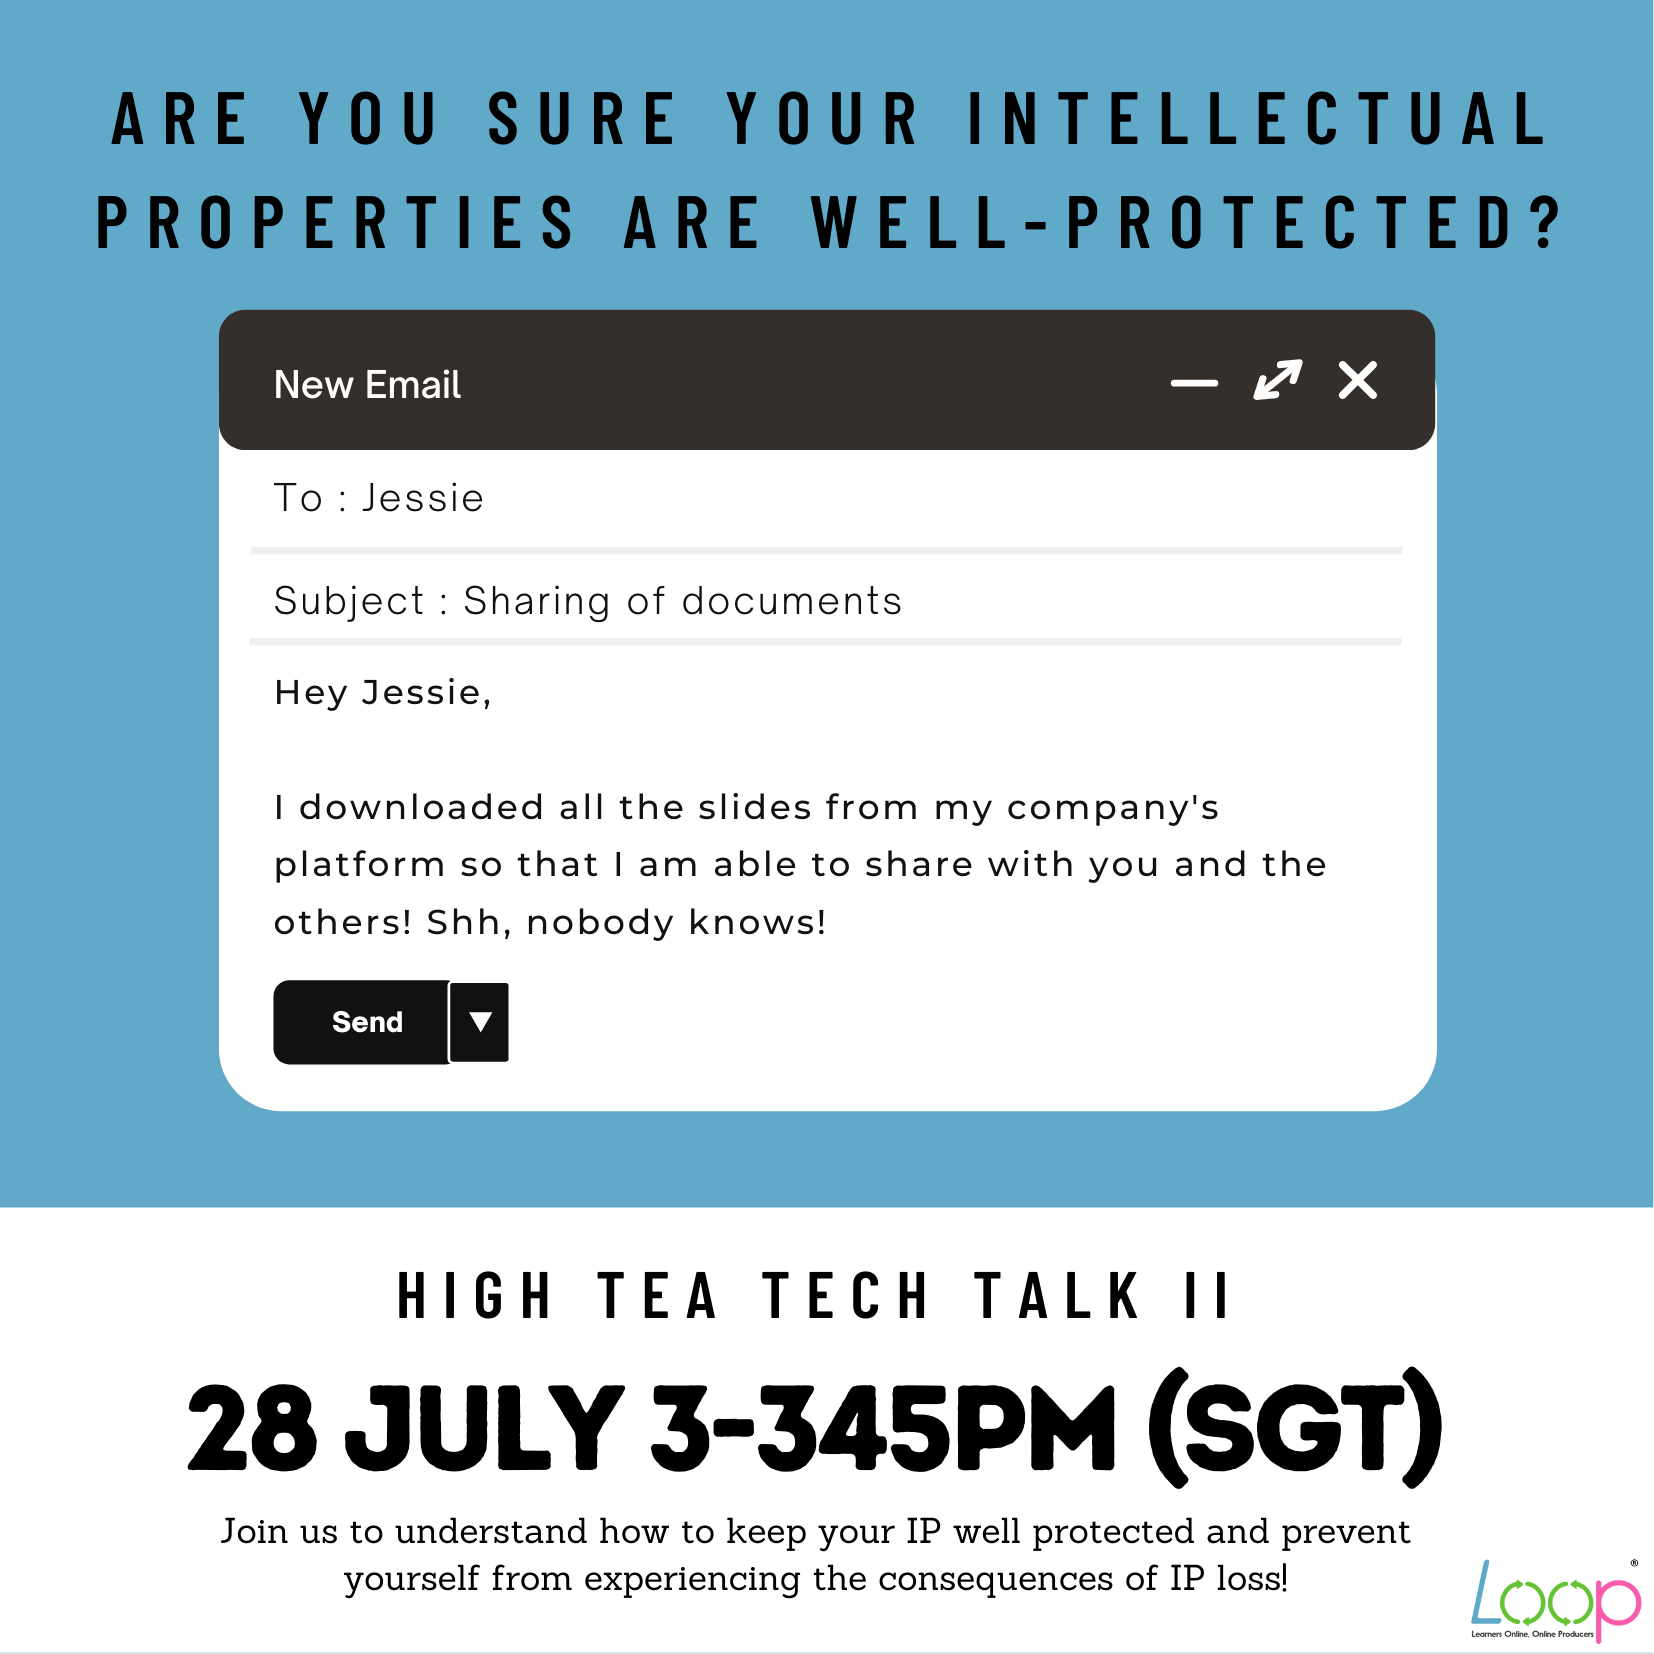 High Tea Tech Talk II: Are your intellectual properties well-protected?